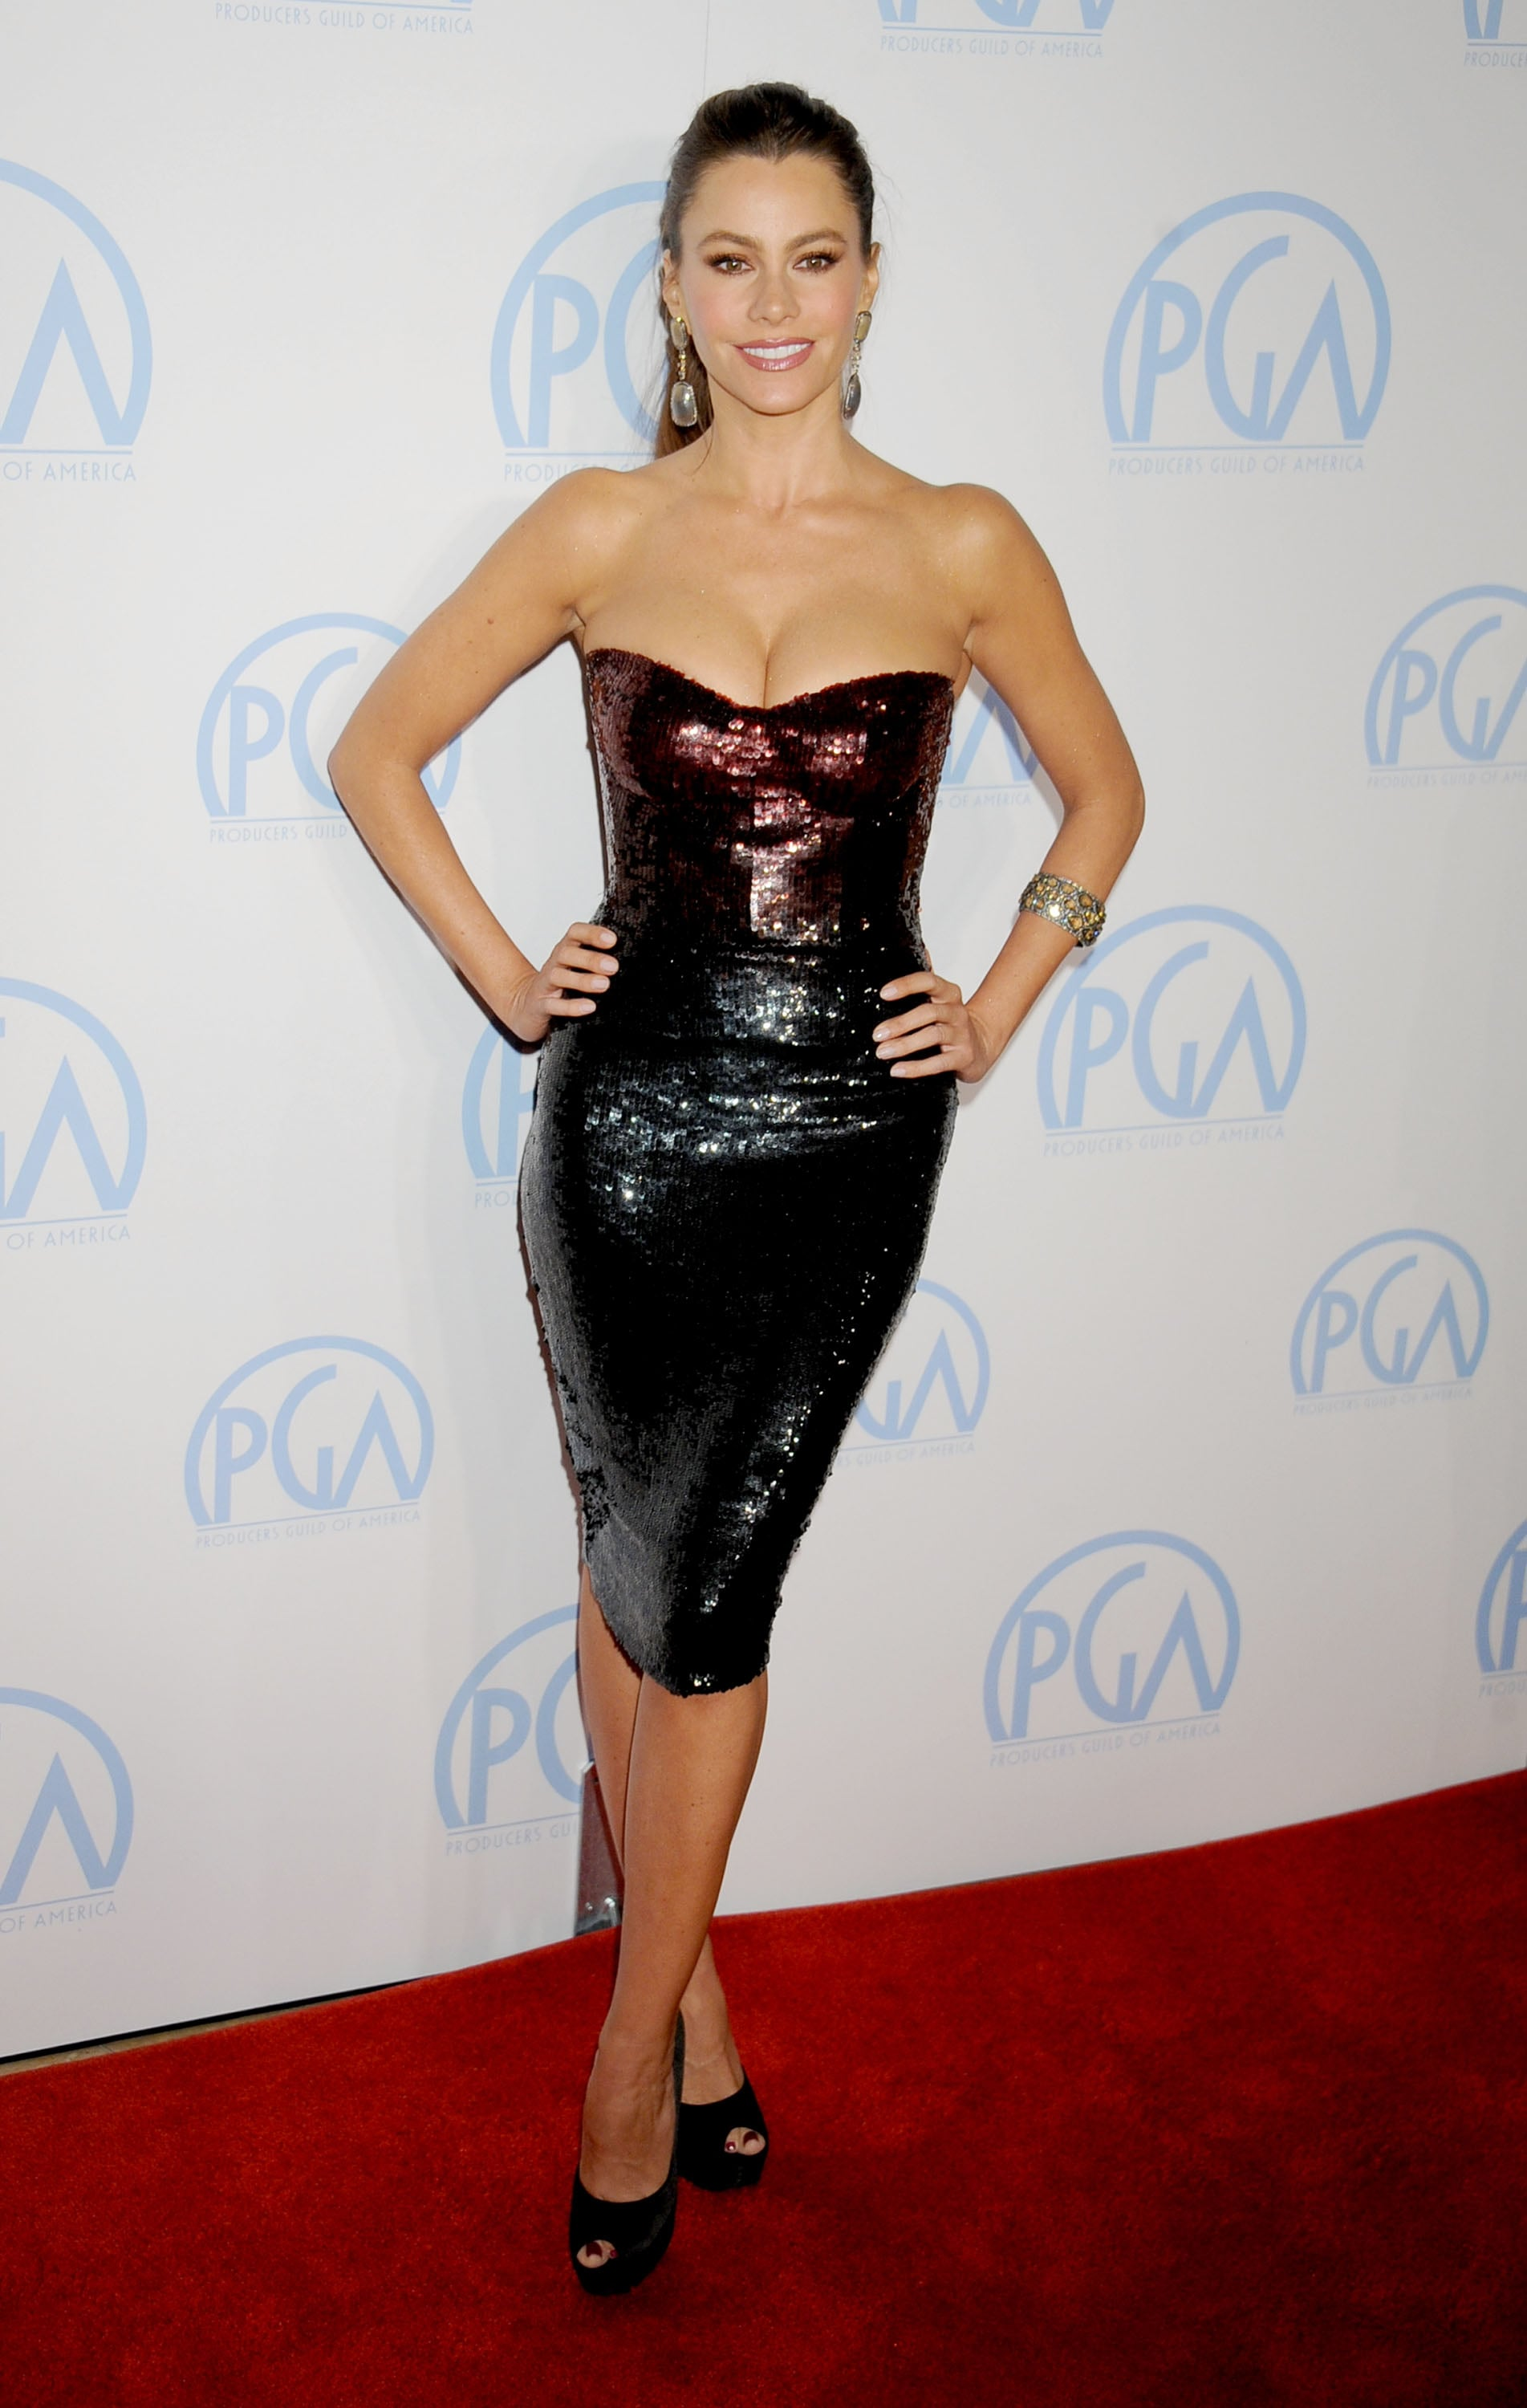 The brunette stunner overdosed on sparkle — in a good way — working an ombré Monique Lhuillier body-con dress at the 2012 Producers Guild Awards.